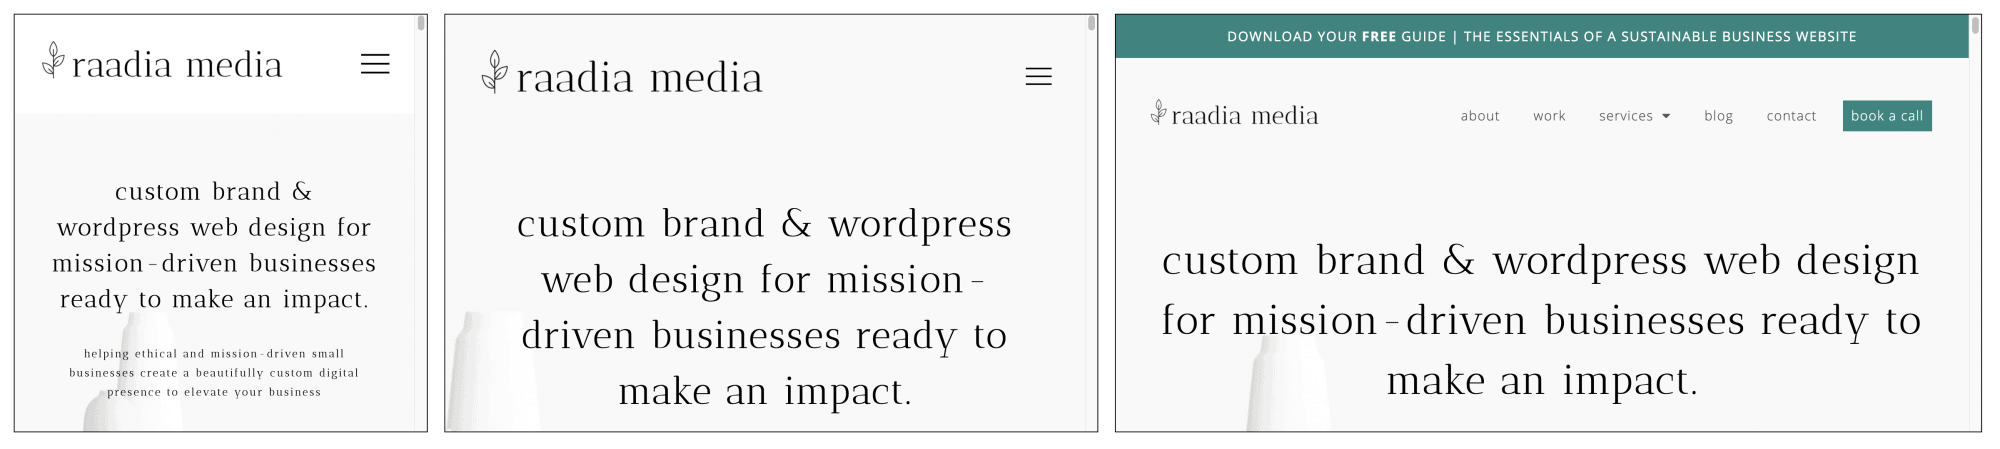 three variations of the raadia media website being view of small to large screens